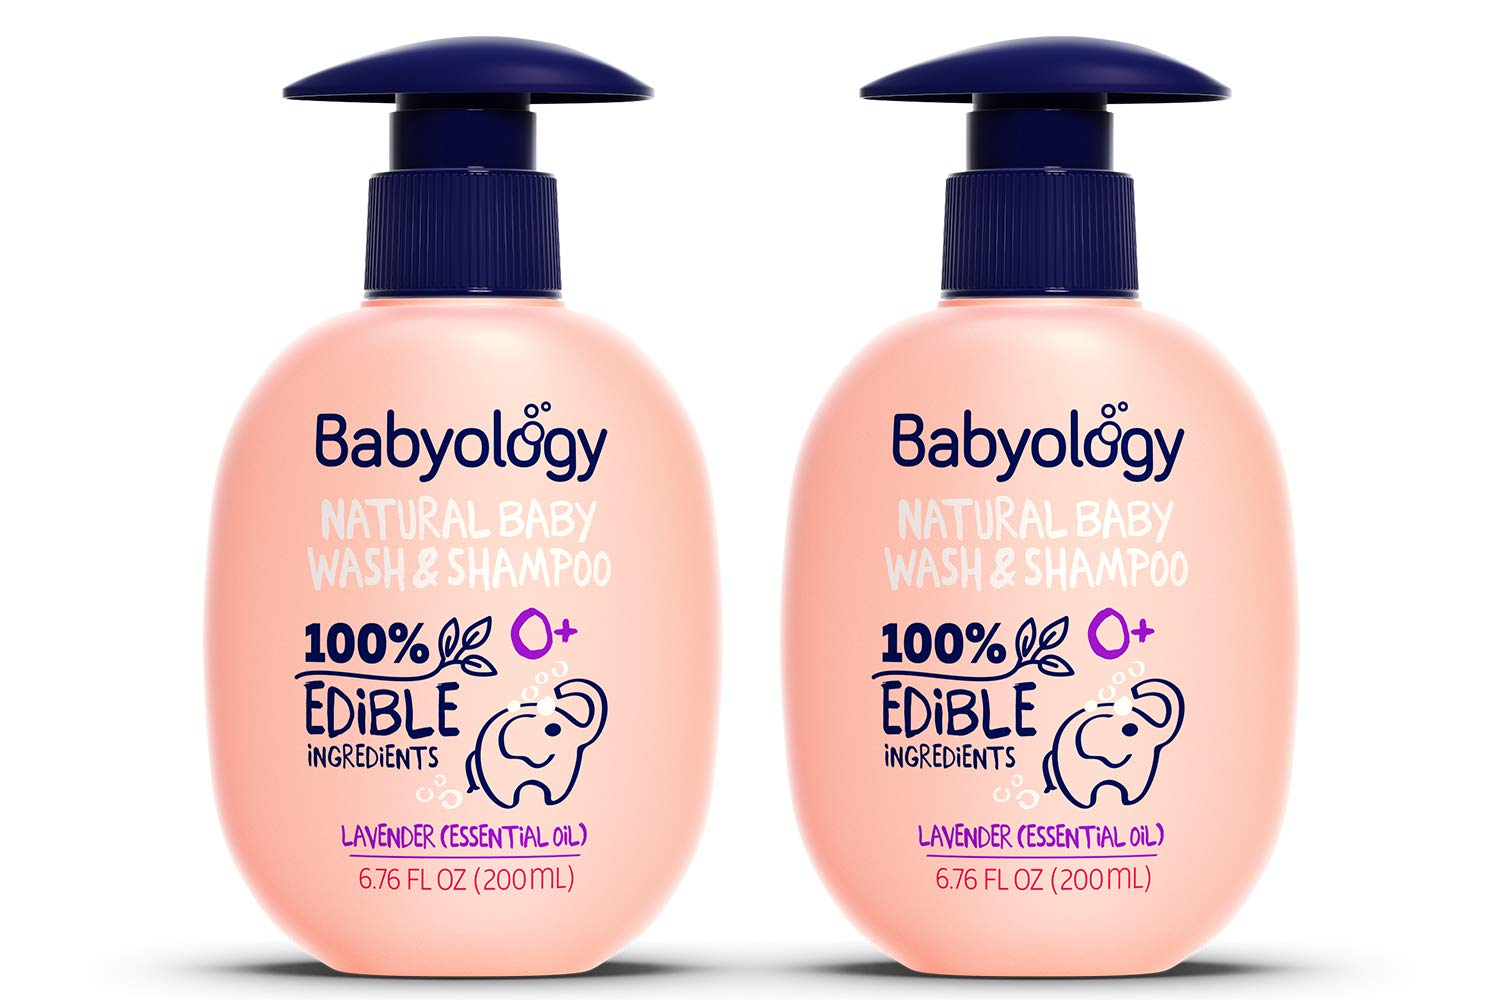 Babyology - 100% Edible Ingredients - Baby Wash & Shampoo – Organic Lavender (Essential Oil) - Clinically Tested - Tear-Free - 6,67 FL. OZ - Perfect Baby Shower Gift (2 Pack)